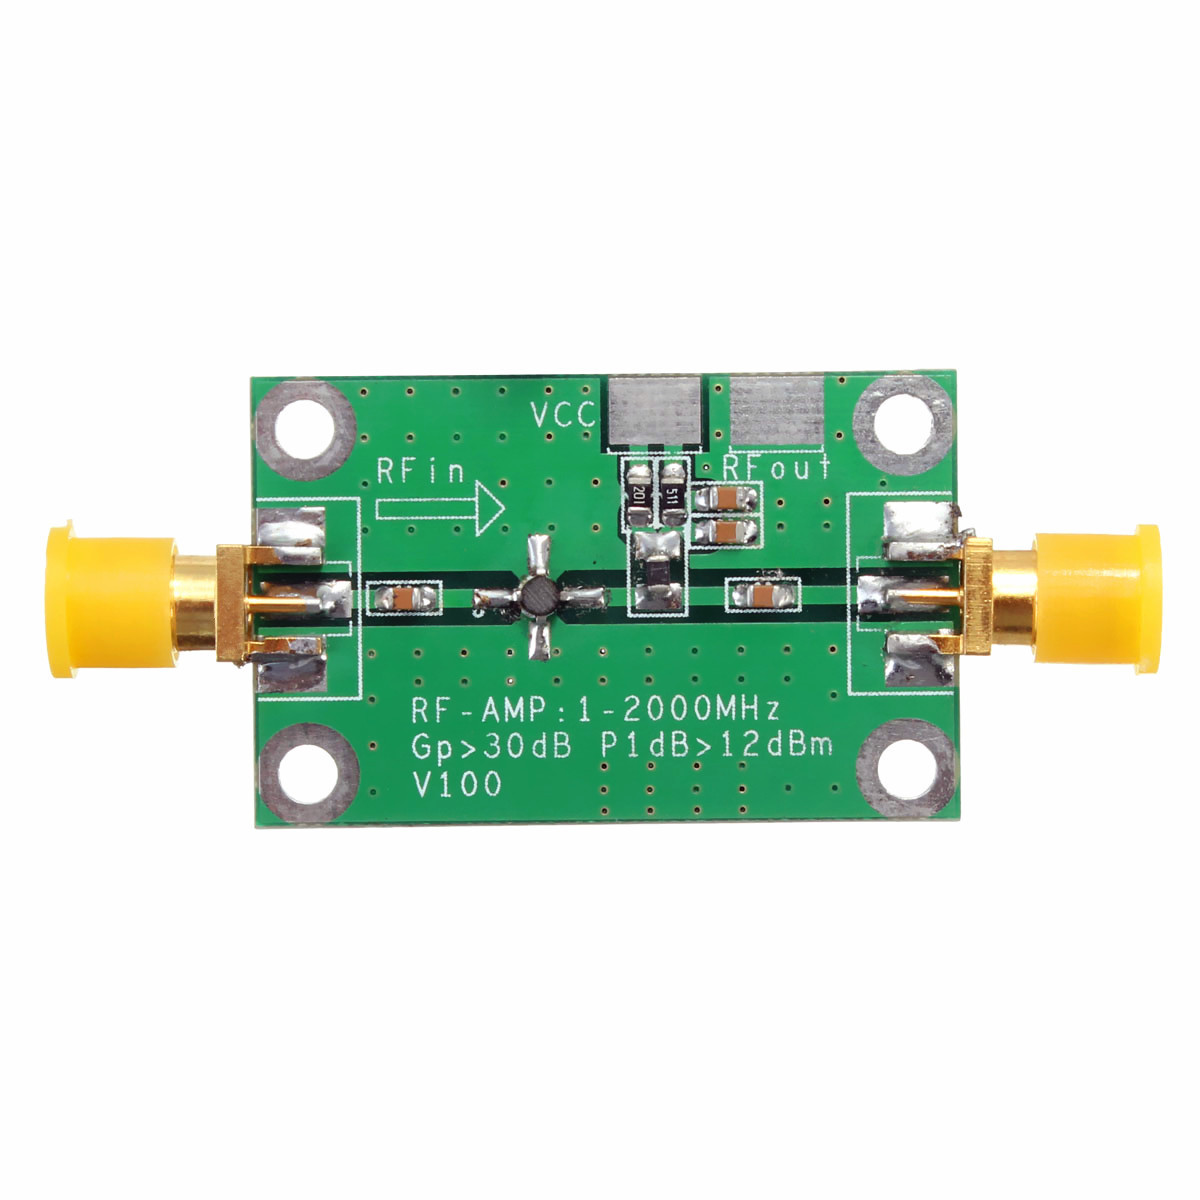 Design; In Leory Ultra-high Frequency 1-2000mhz 2ghz 30db Rf Amplifier Board Broadband Gain Amplification Low Noise Module For Vhfvhf/uhf Novel